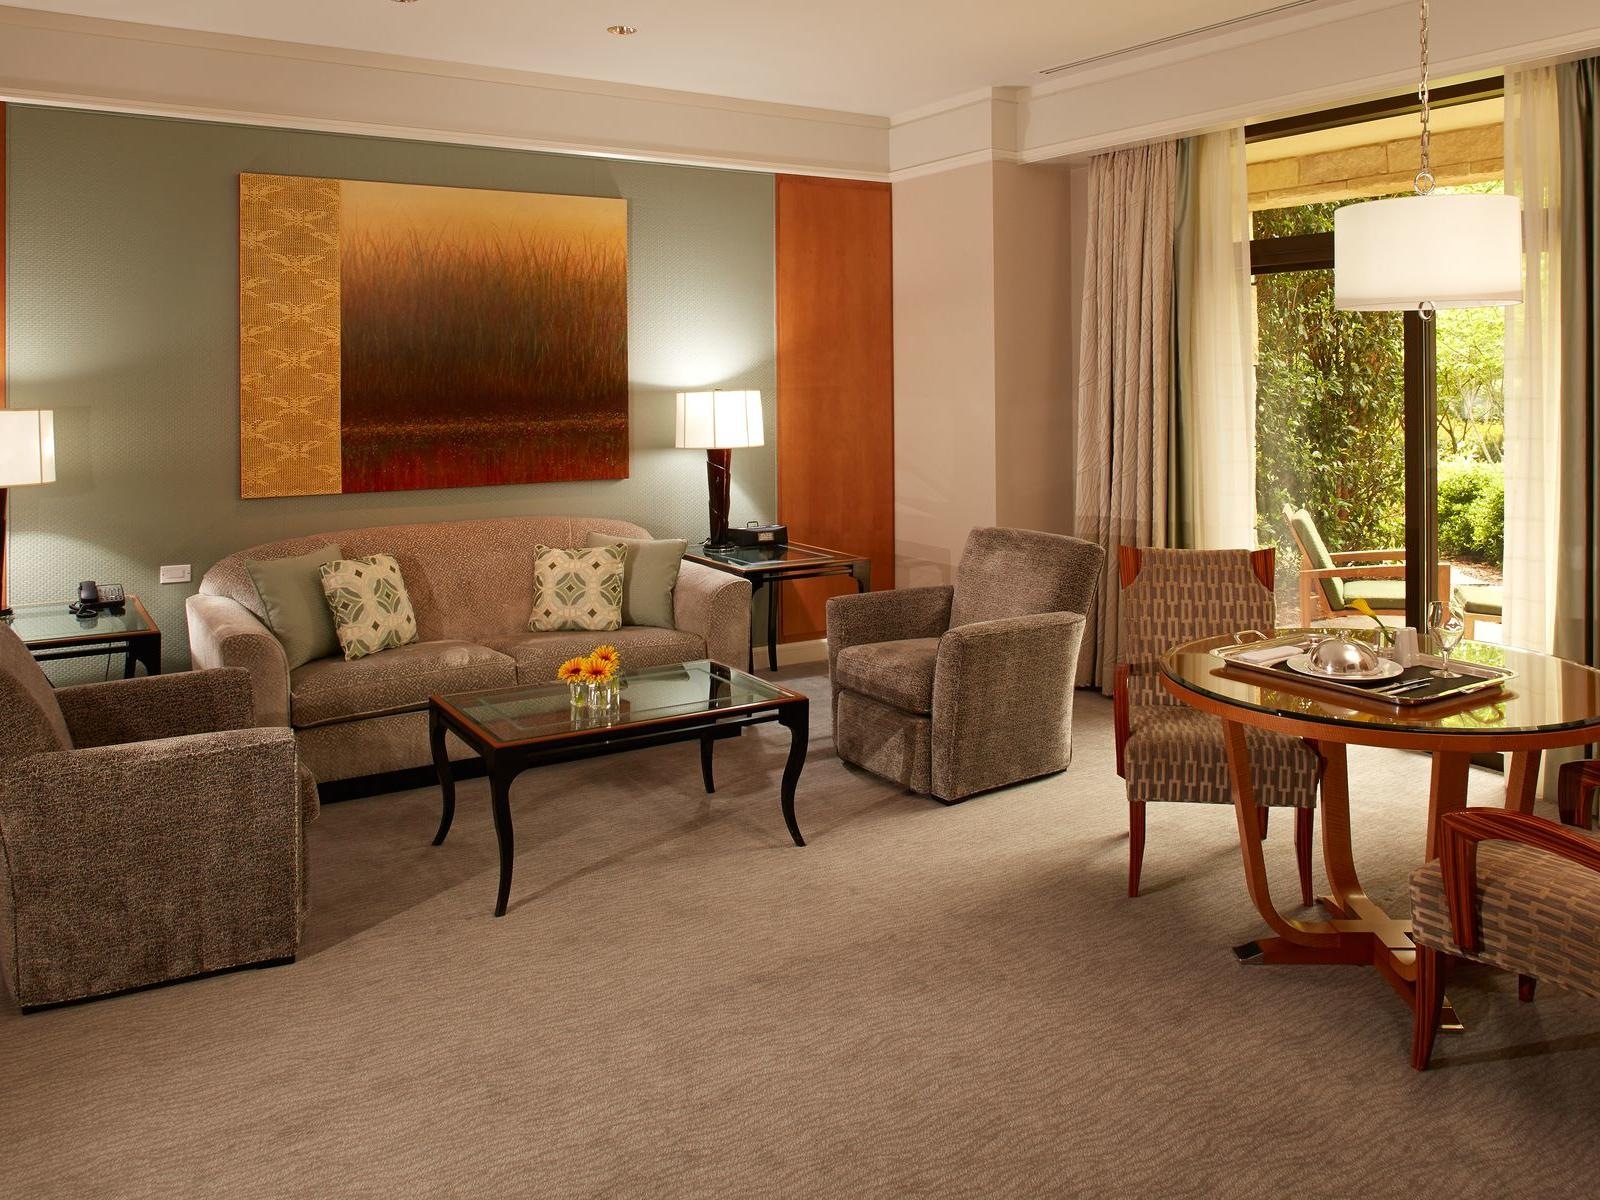 living room of hotel suite with couches and table